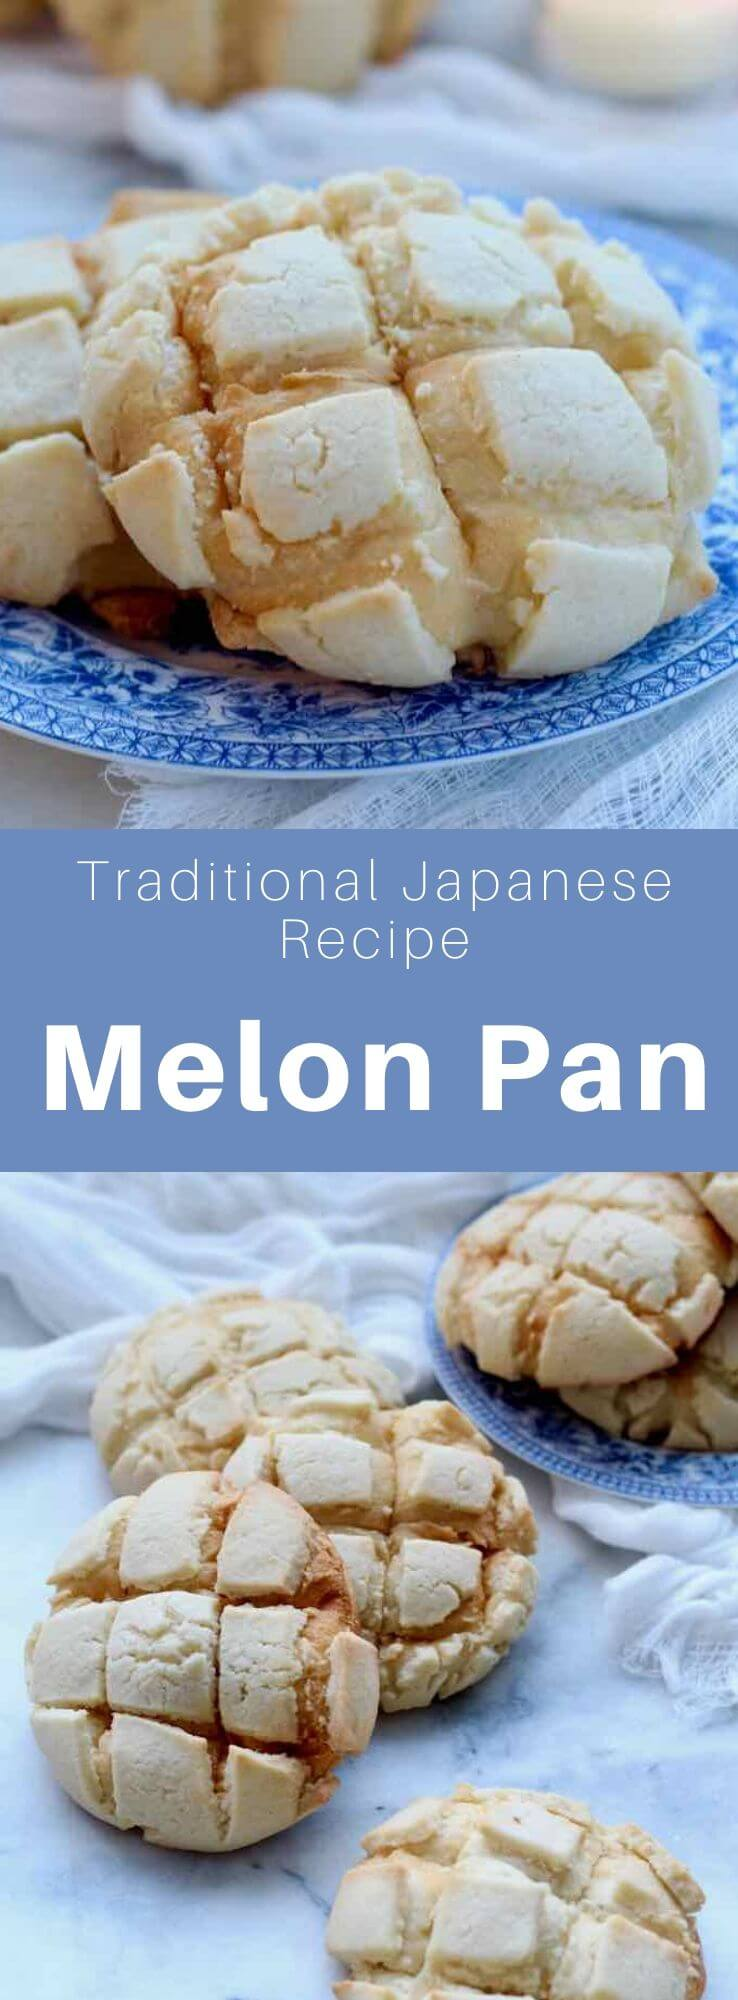 Melon pan or melonpan is a Japanese baking specialty whose inside consists of brioche with an outer cookie crust reminiscent of the melon texture. #Japan #Japanese #JapaneseFood #JapaneseCuisine #JapaneseRecipe #AsianCuisine #AsianFood #AsianCuisine #WorldCuisine #196flavors